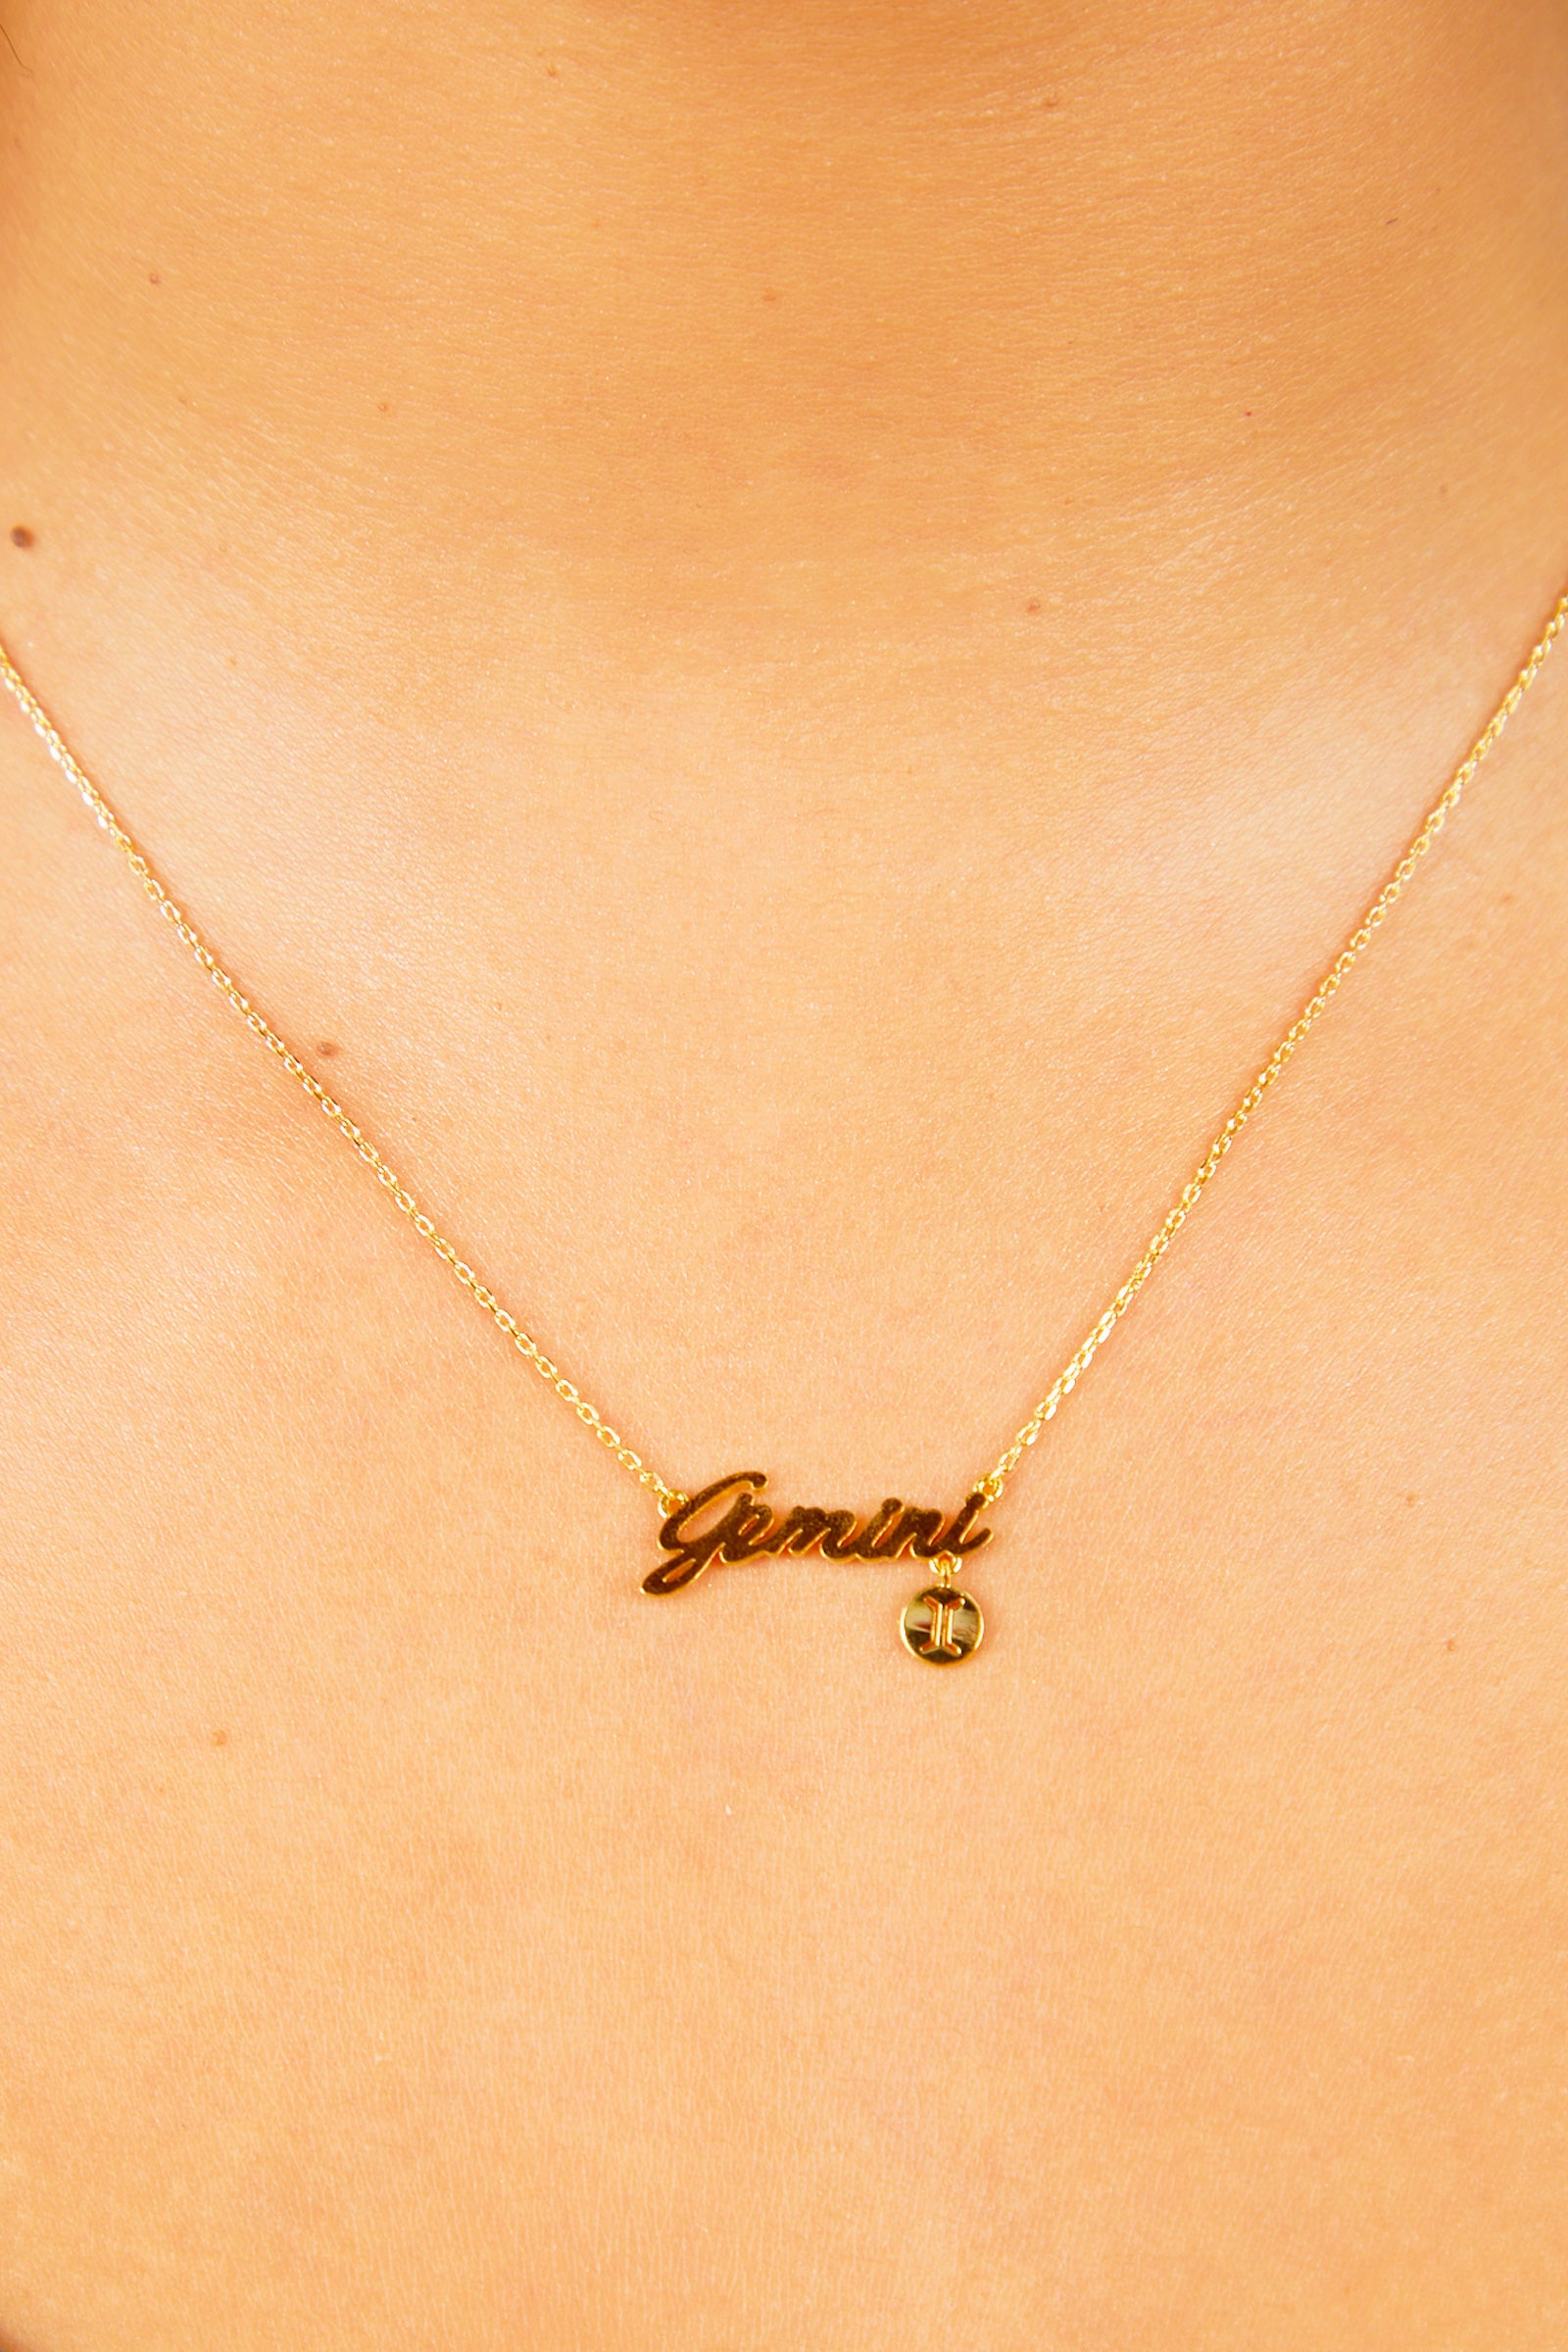 Gemini Nameplate Necklace - Gold